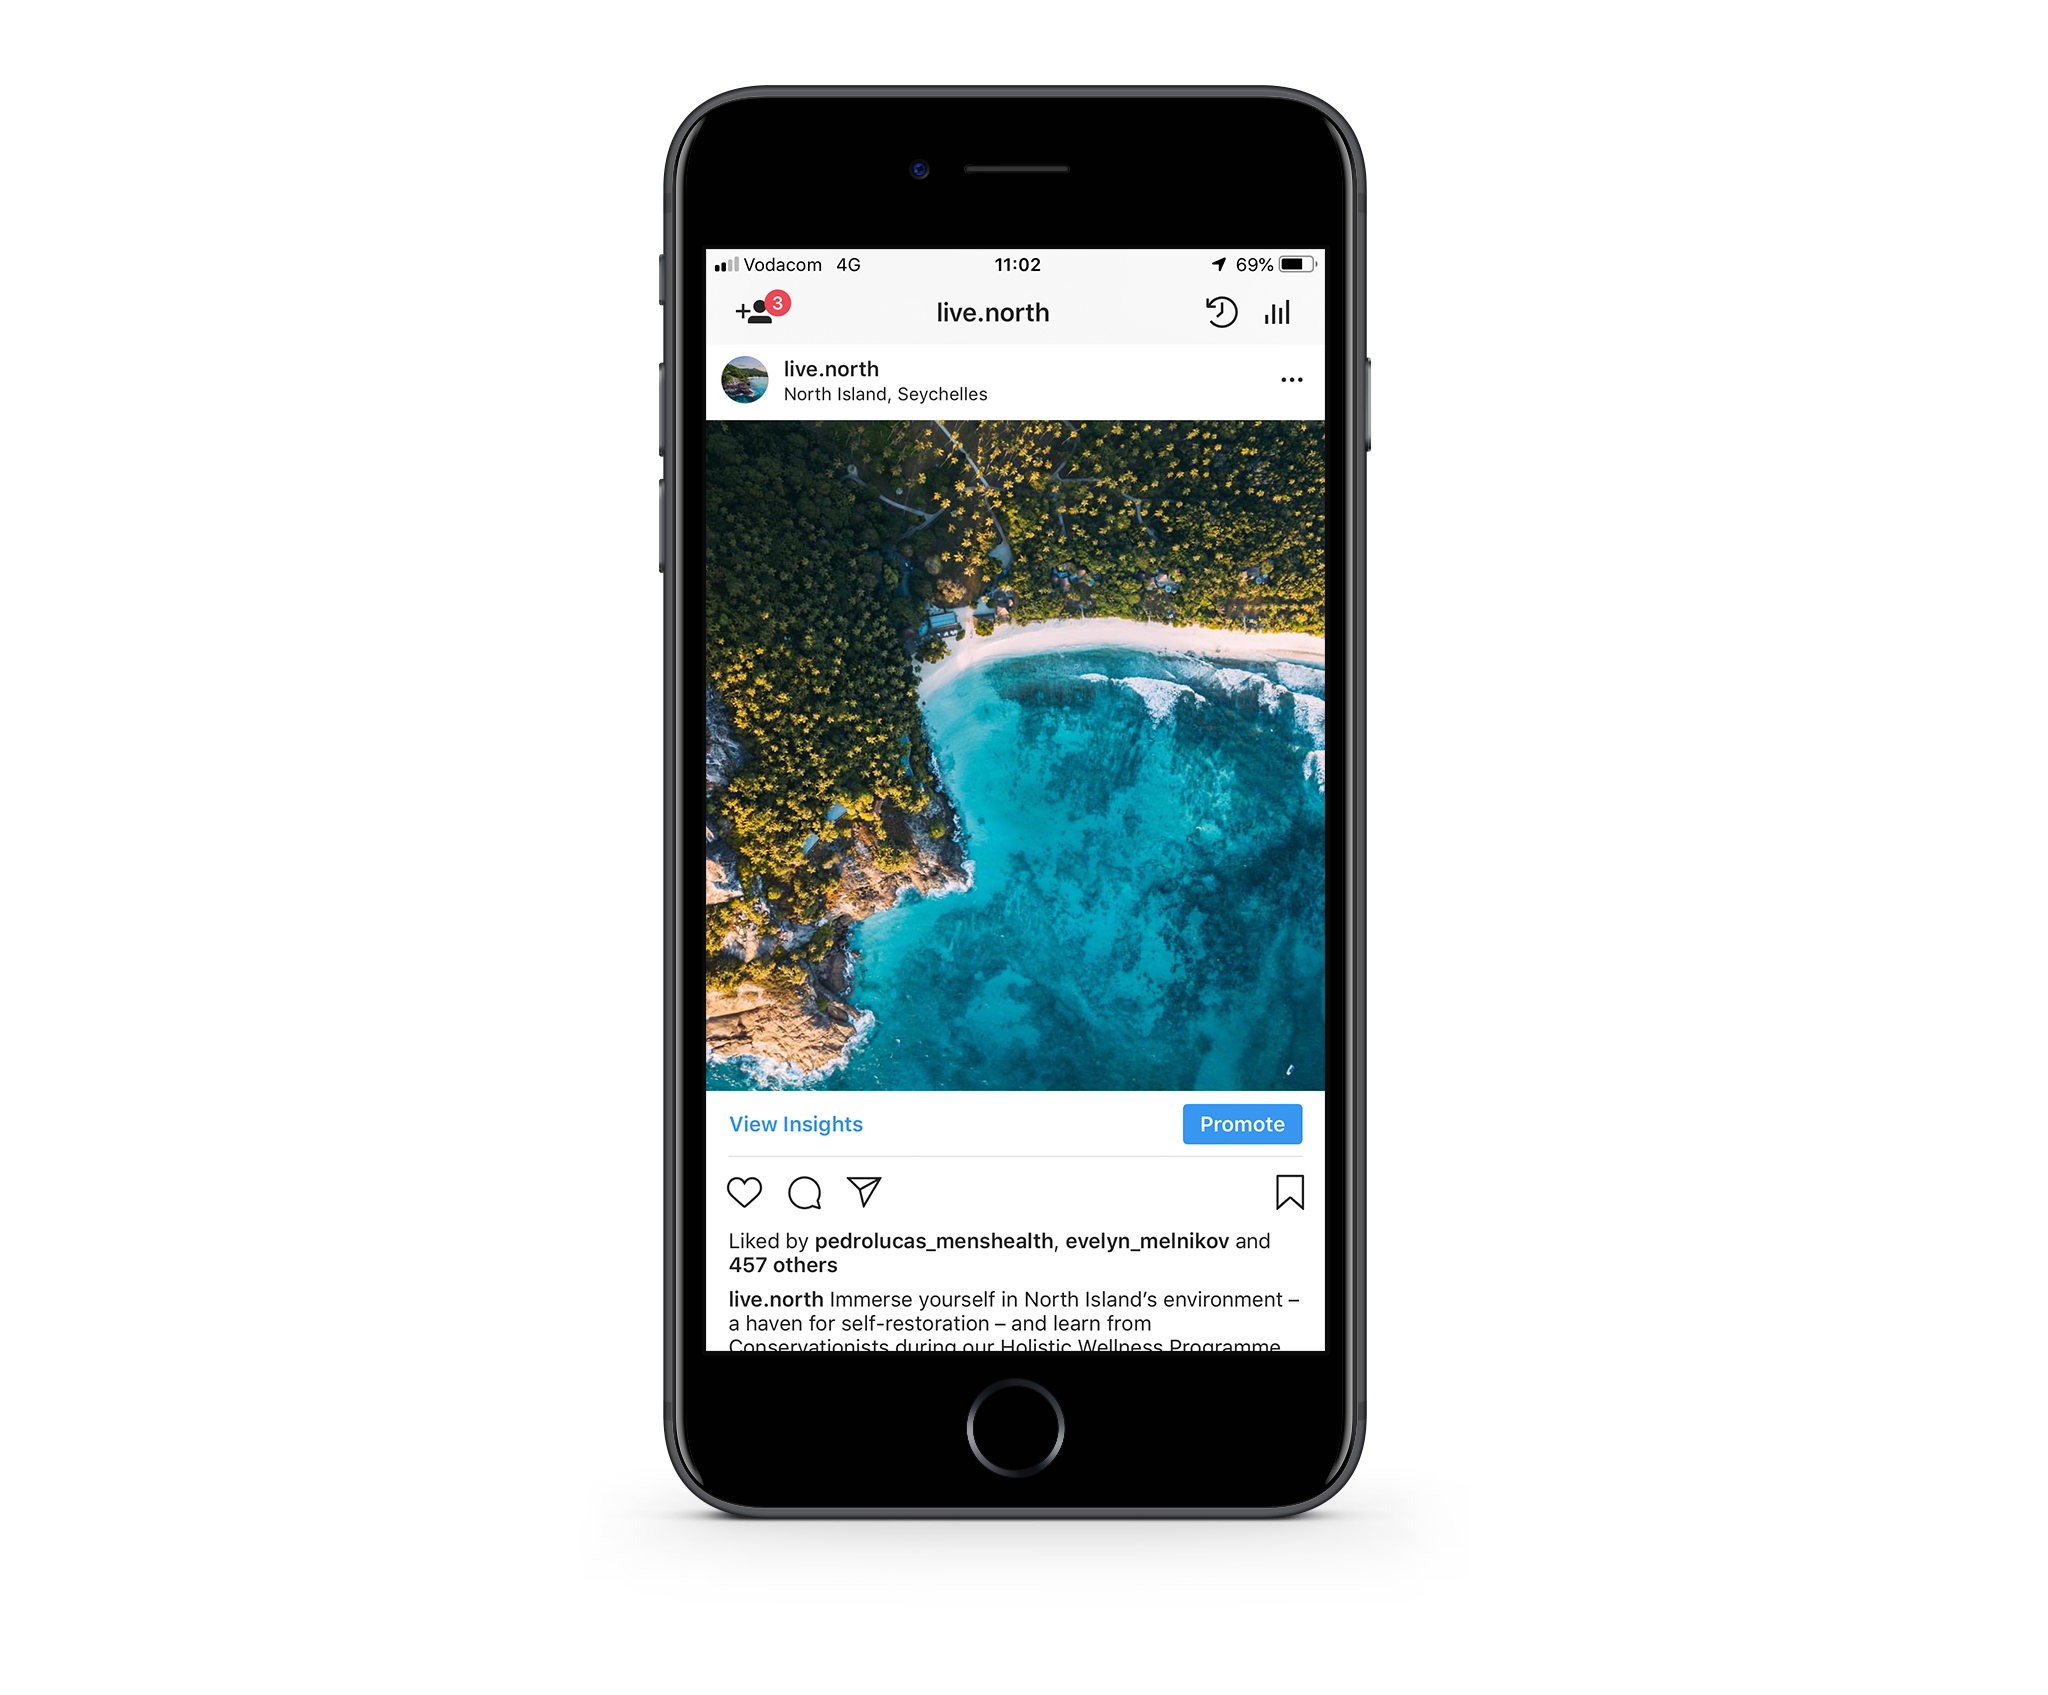 A iPhone showing North Island's instagram post of an aerial of the private island featuring azure waters, emerald palm trees and soft white sands